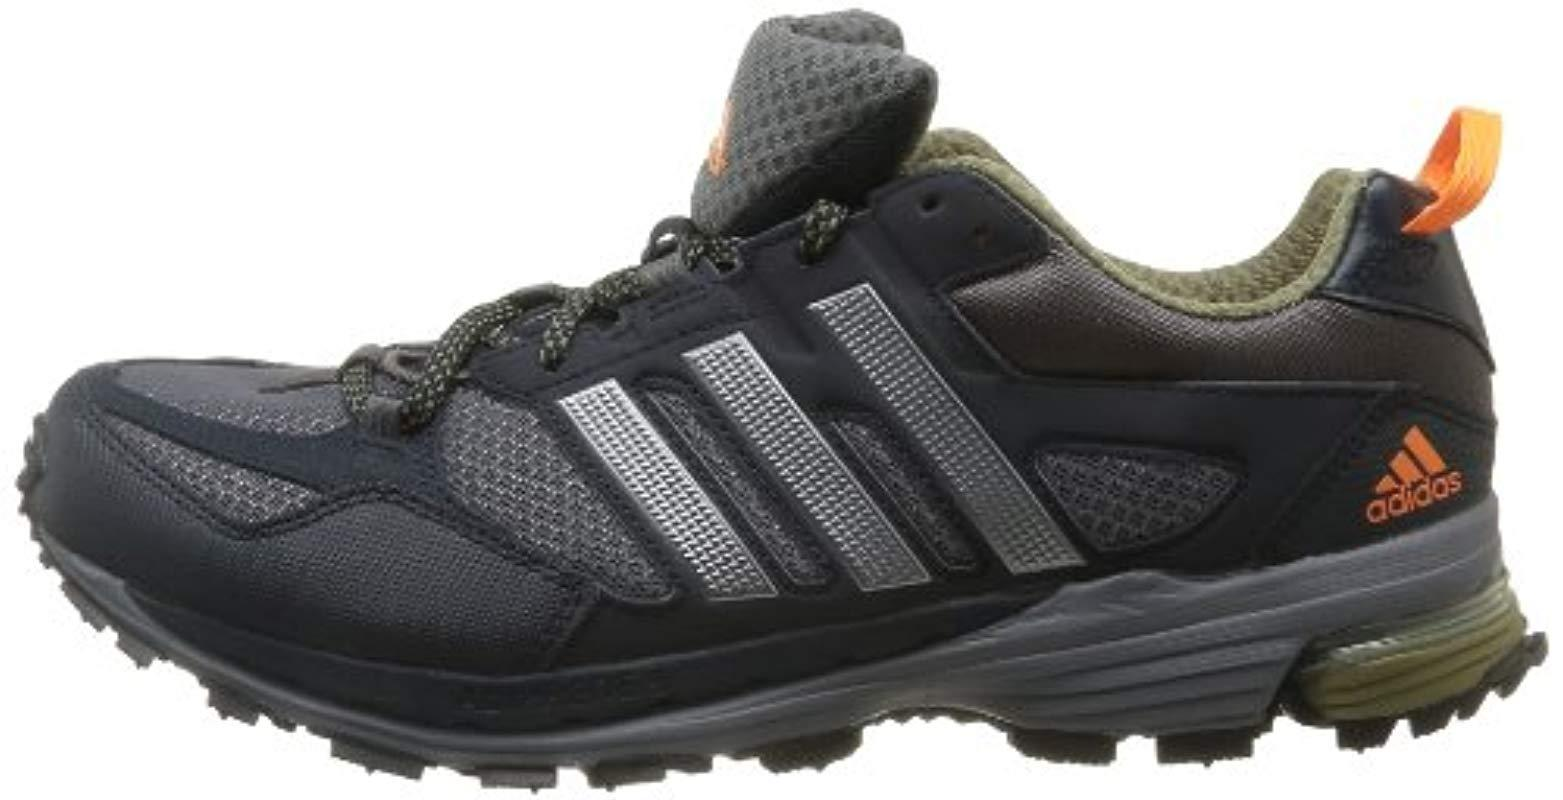 Útil Arruinado Escarchado  adidas Supernova Riot 5 M, Chaussures De Trail in Grey for Men - Lyst